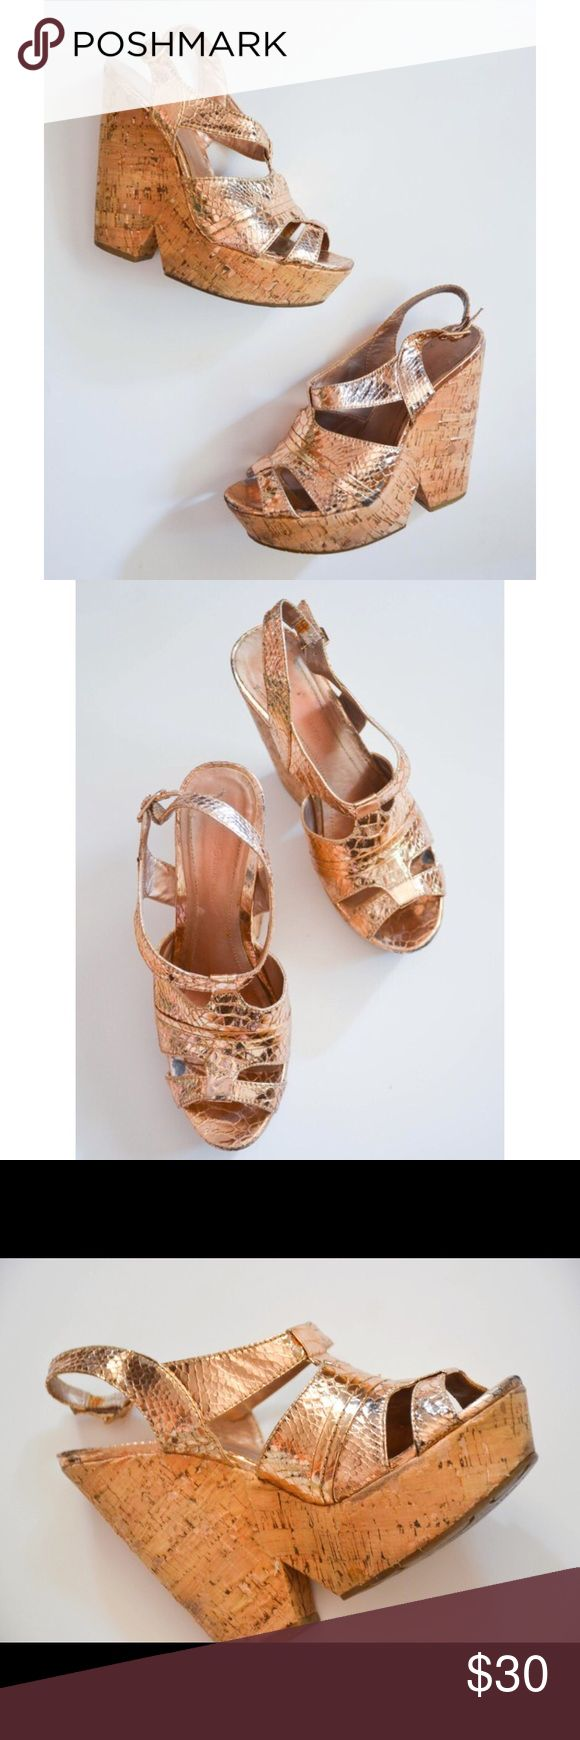 BGBGeneration Rose Gold Metallic Wedges Brand: BCBGeneration Style: PL-Edelle Wedge height: 5 inches Condition: worn, some wear on the soles, excellent outer condition though.  Size: 7.5 B NO SWAPS BCBGeneration Shoes Wedges